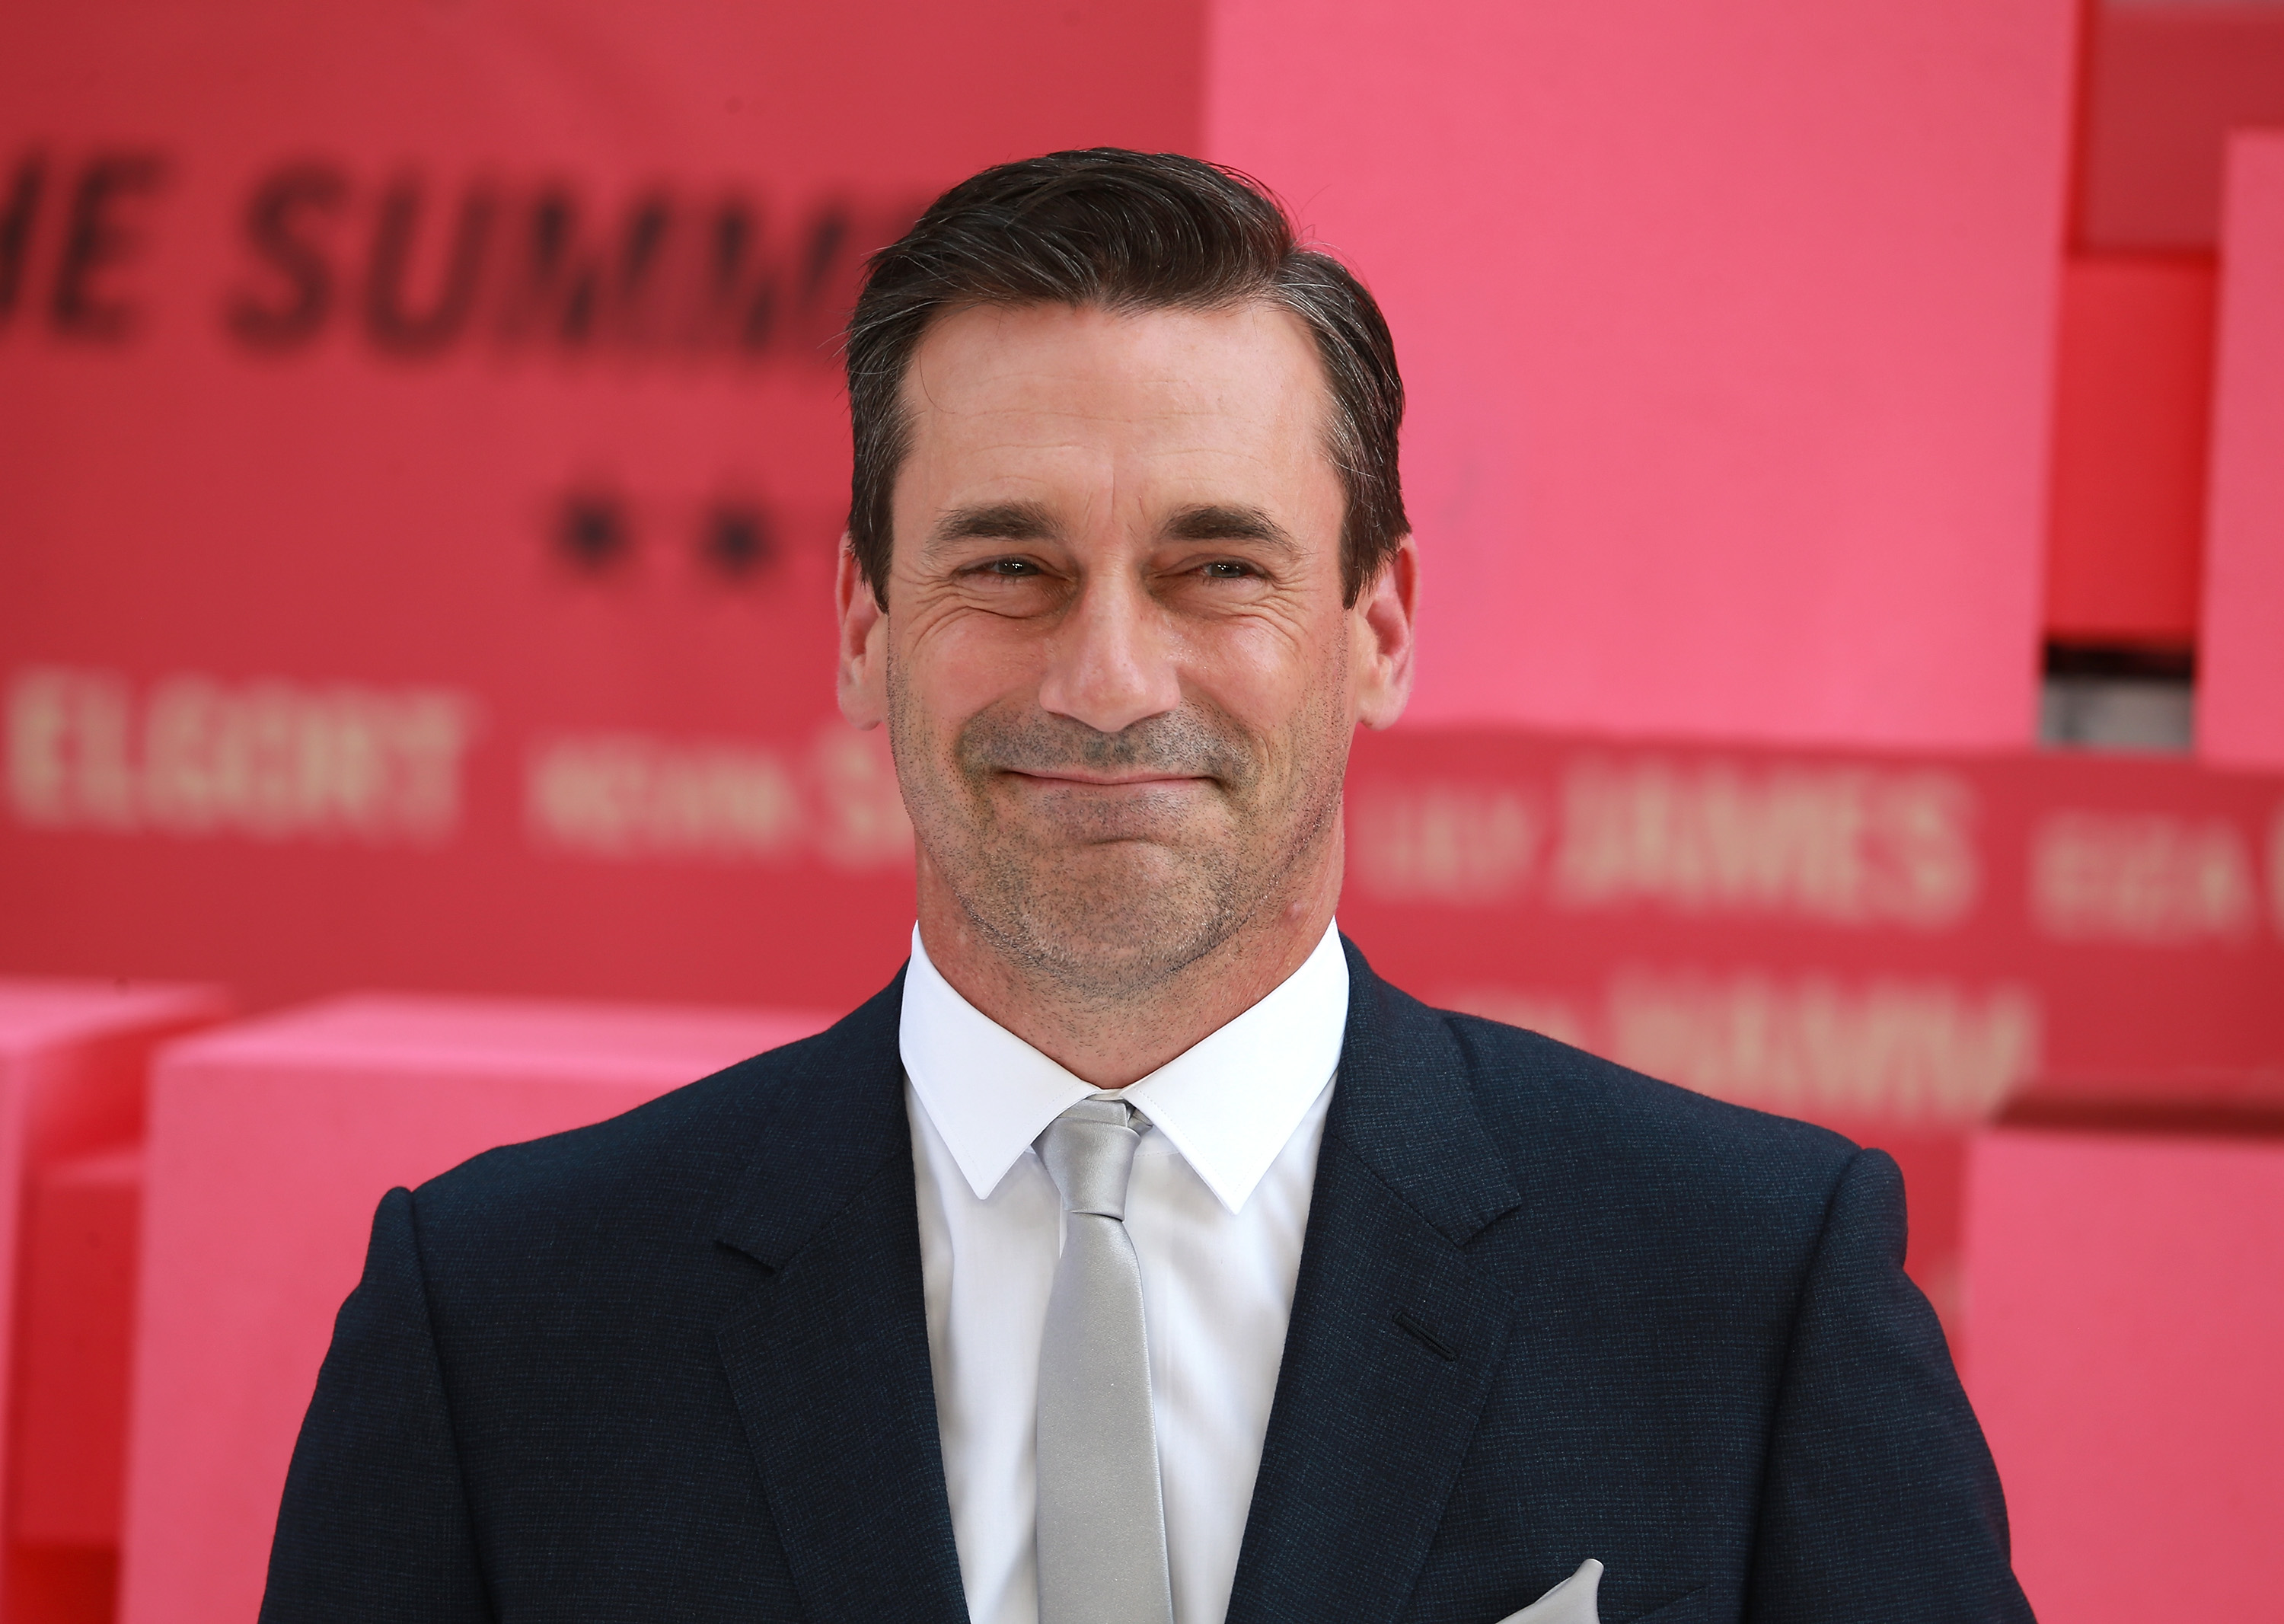 Neil Gaiman shares the first look at Jon Hamm in upcoming Good Omens series